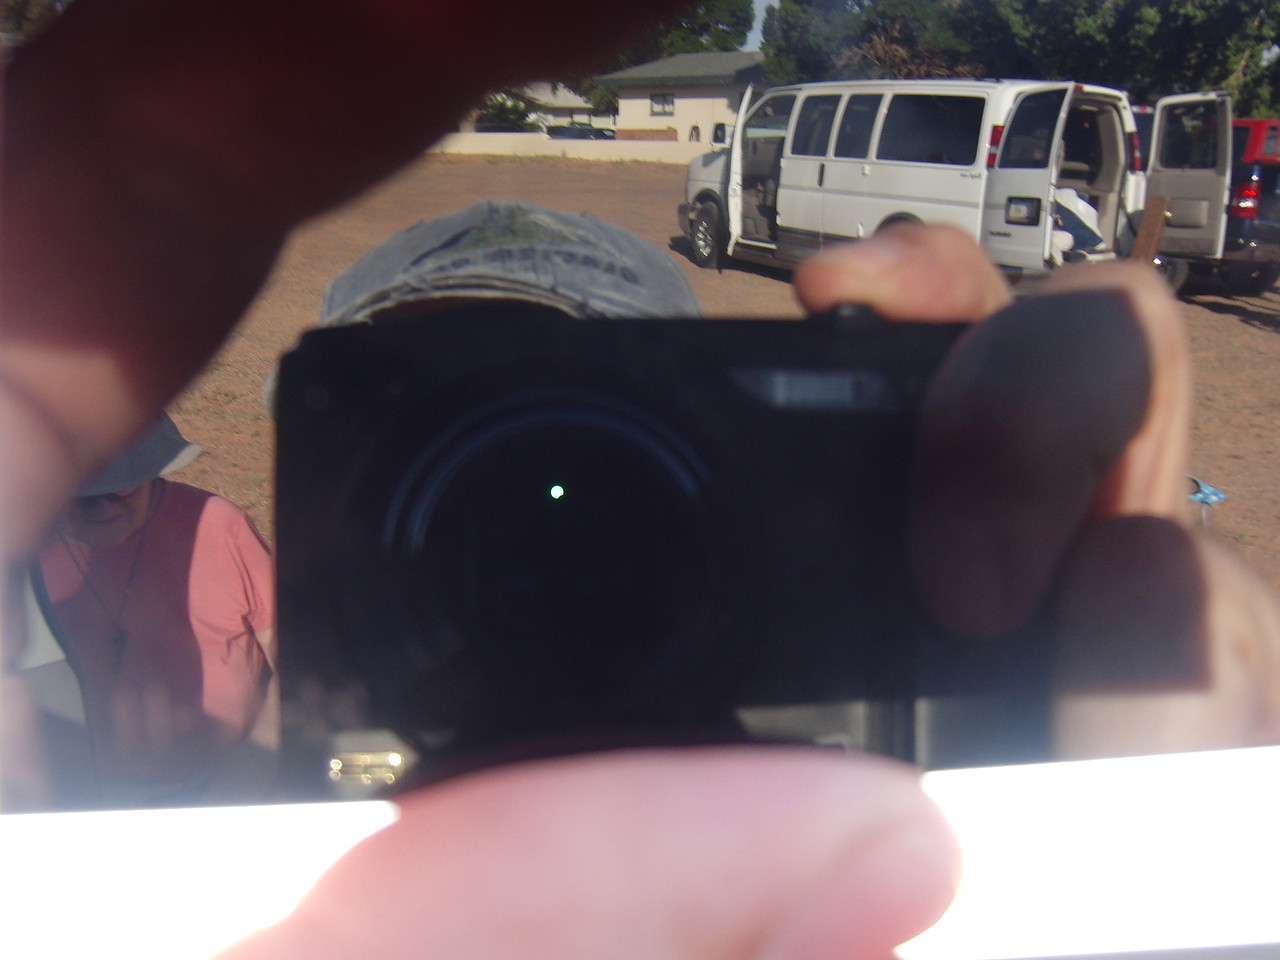 Dr. Winslow takes a picture through the welding glasses.  The next photo shows a closeup of the apparition.  Notice the camera, Dr. Young, and the school van in the reflection of the glass.  The Sun is on the other side of the glasses.